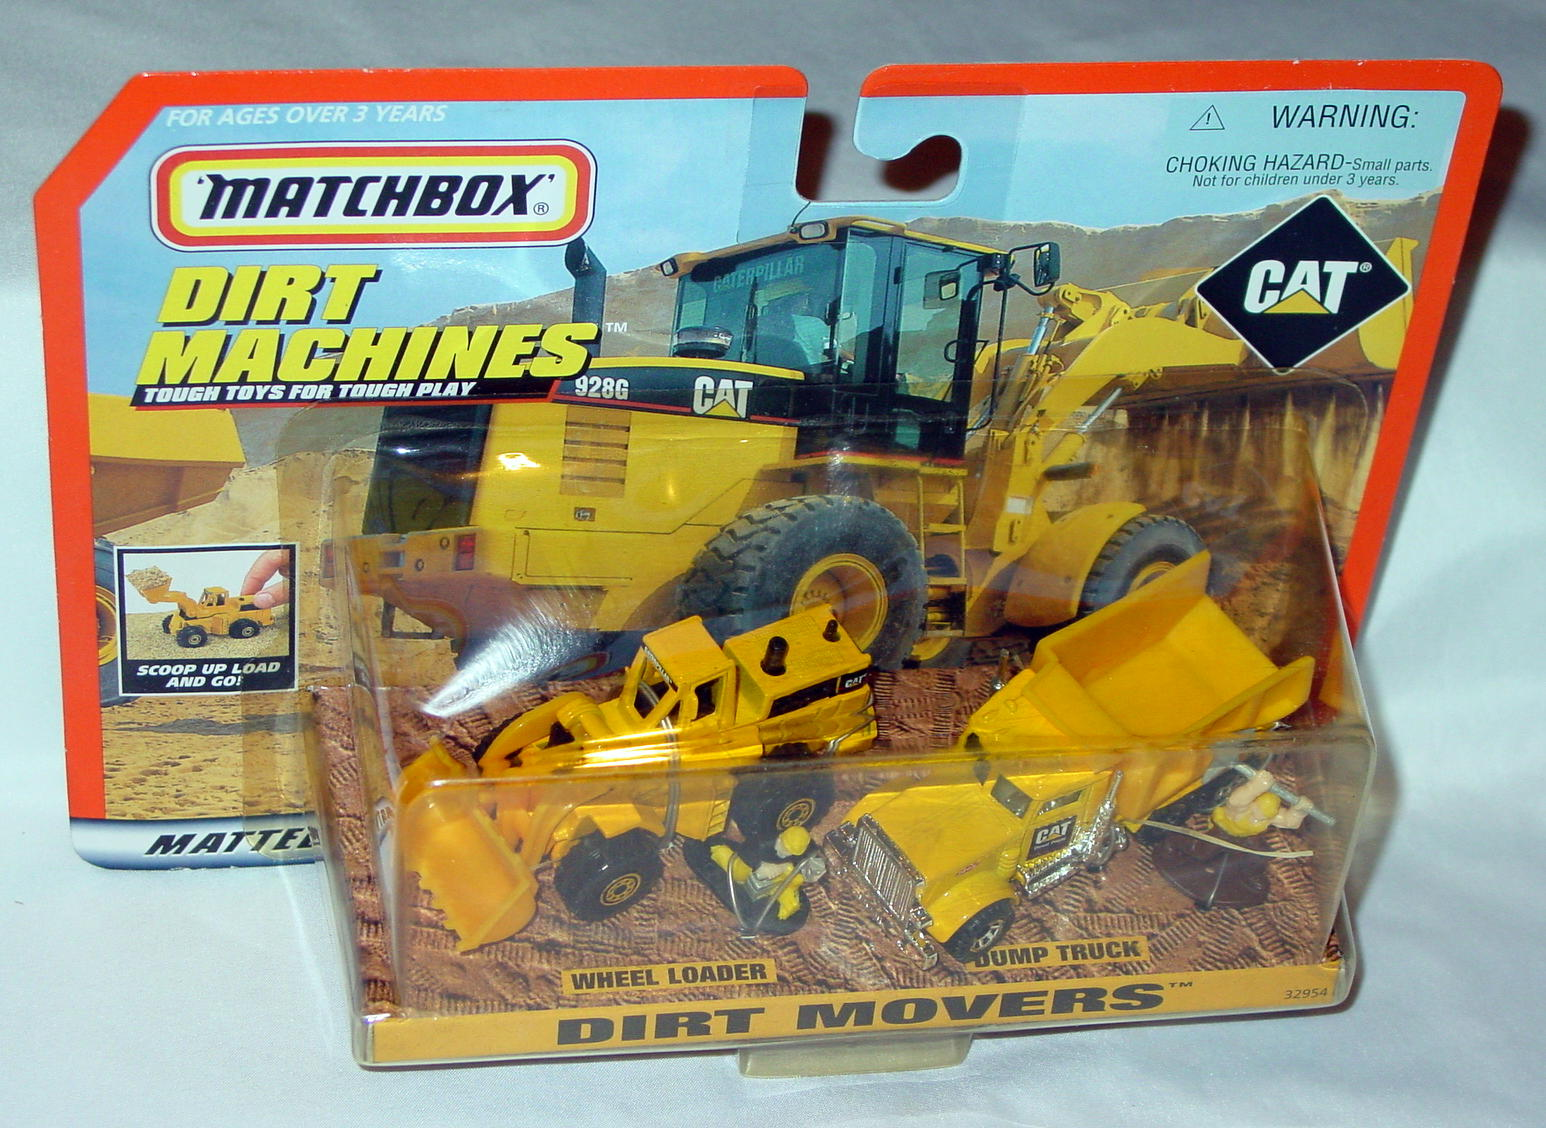 Offshore SuperFast - CAT 32954 Dirt Movers Wheel Loader Dmp Truck Yellow